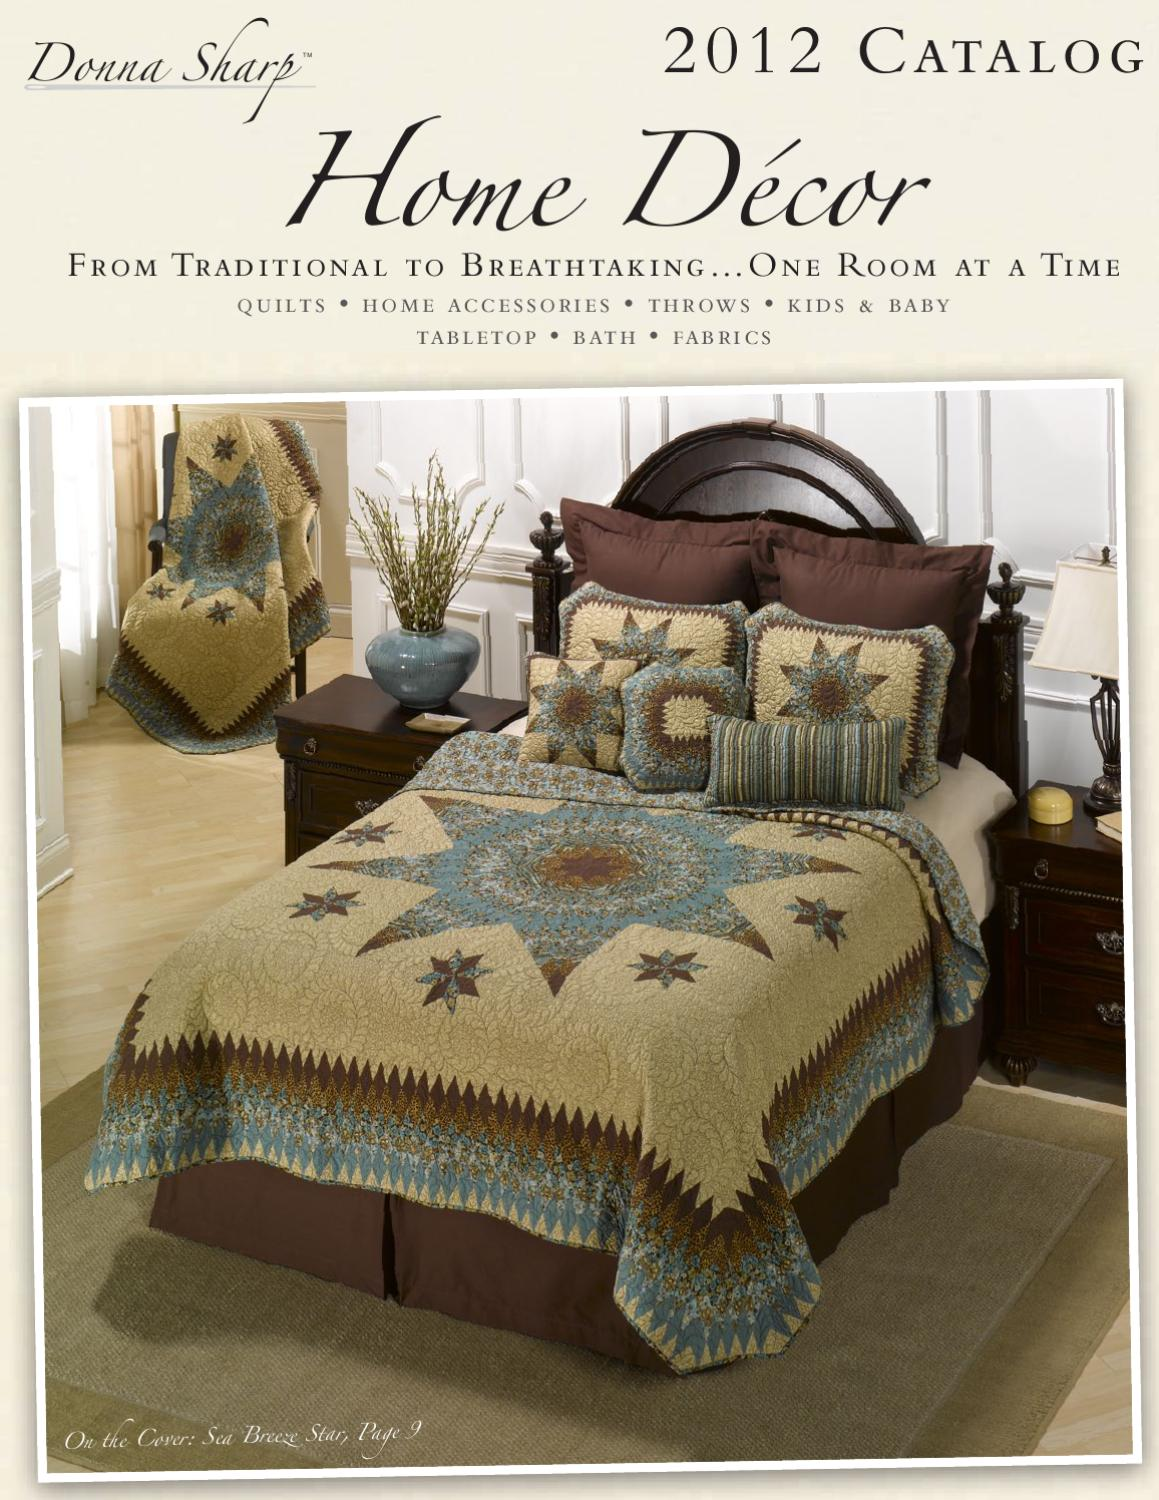 Home Decor Catalog 2012 by Donna Sharp Inc. - Issuu